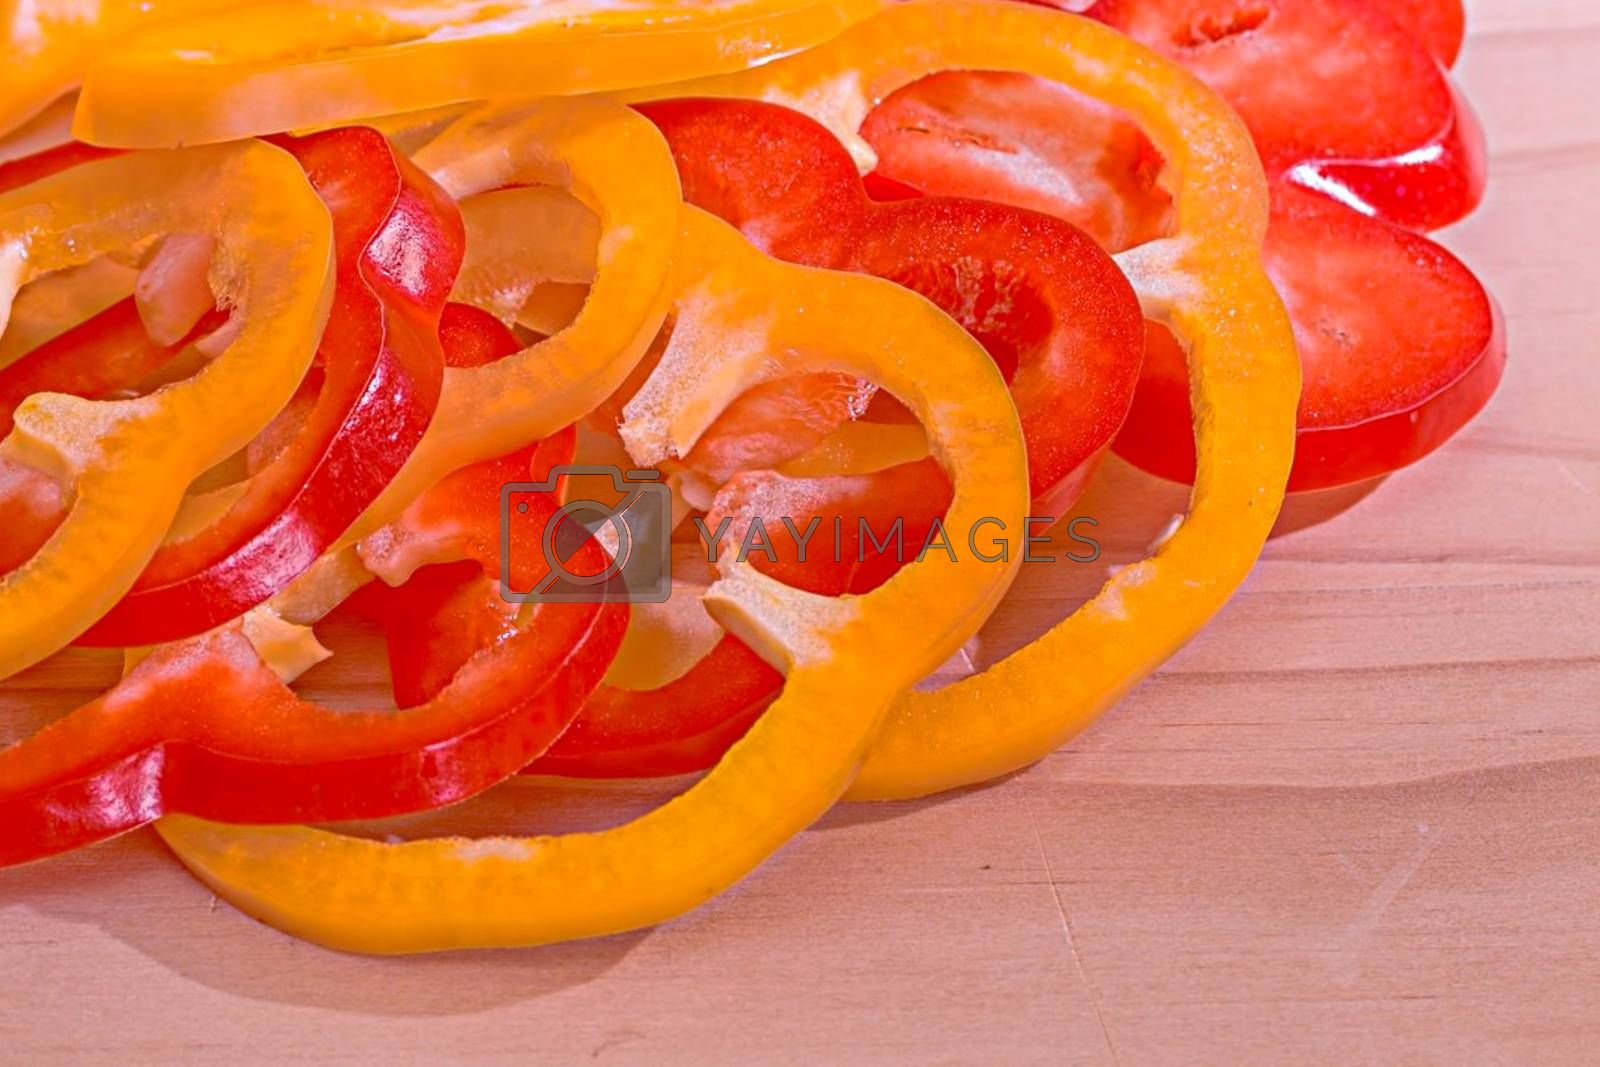 Royalty free image of Close-up of California peppers on the table by balage941